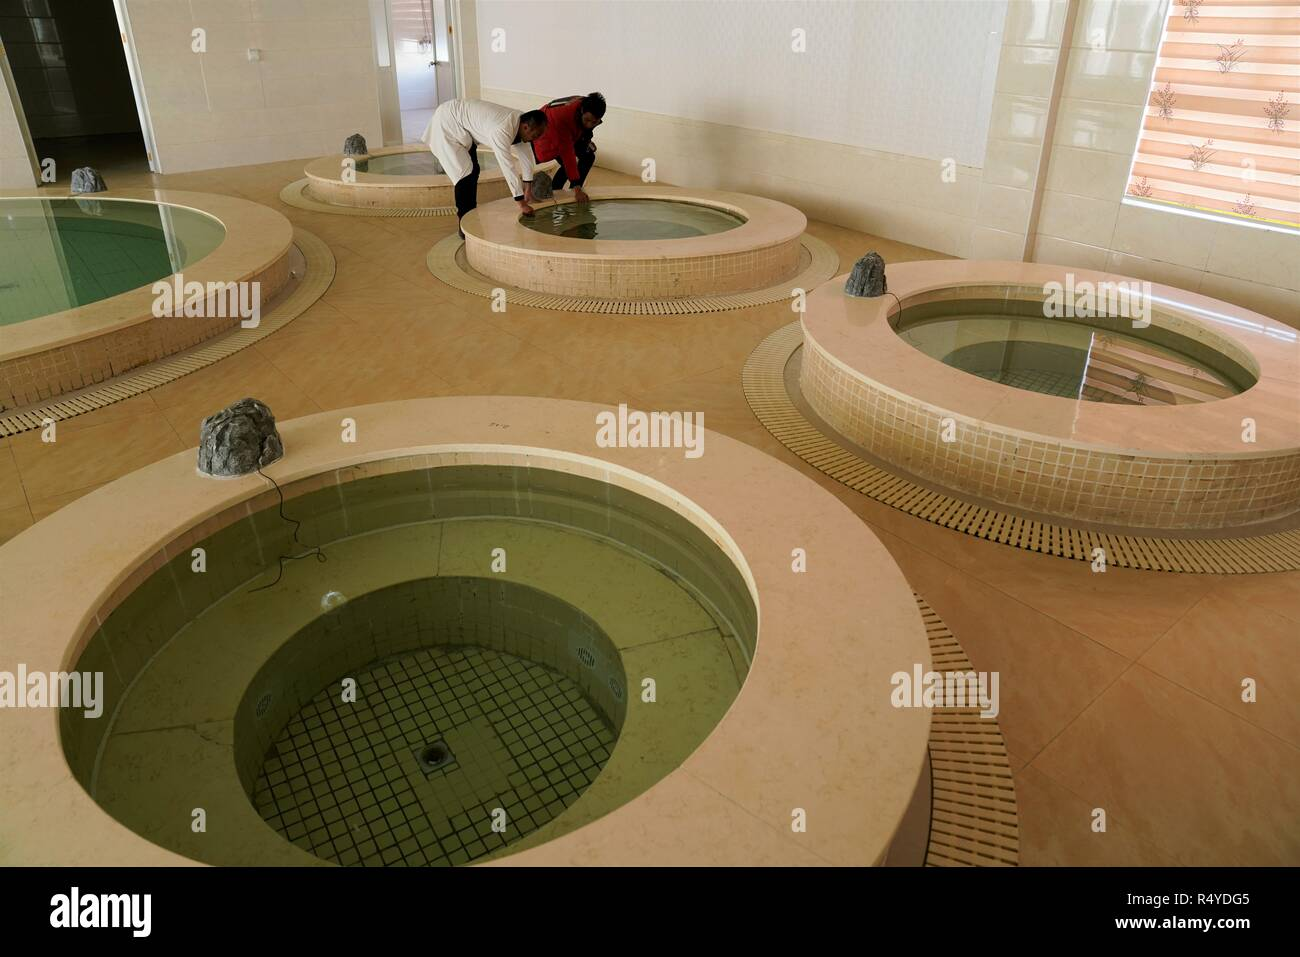 (181128) --  LHASA, Nov. 28, 2018 (Xinhua) -- Staff check the bath pools of Lum medicinal bathing of Sowa Rigpa at the Tibetan Medicine Hospital in southwest China's Tibet Autonomous Region, Nov. 21, 2018.     The United Nations Educational, Scientific and Cultural Organization (UNESCO) inscribed on Wednesday China's Lum medicinal bathing of Sowa Rigpa on the Representative List of the Intangible Cultural Heritage of Humanity, at a convention held in Port Louis, capital of the Republic of Mauritius.    The Lum medicinal bathing of Sowa Rigpa is knowledge and practices concerning life, health a - Stock Image